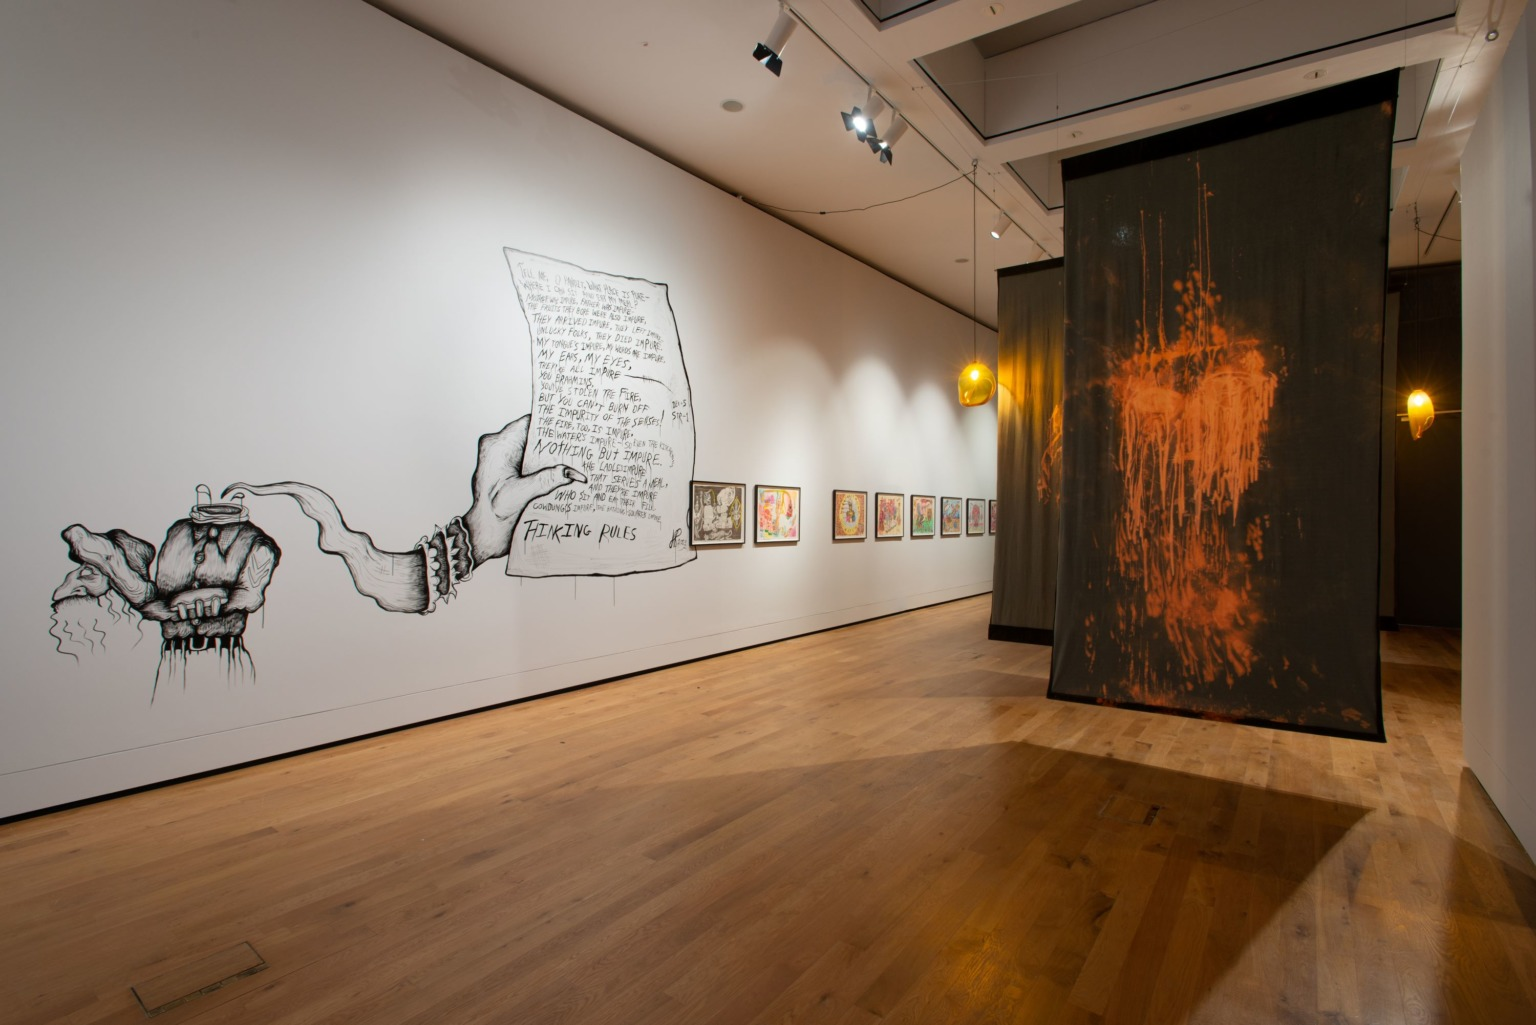 Installation view of British Art Show 9 at Aberdeen Art Gallery with artworks by Hardeep Pandhal and Paul Maheke